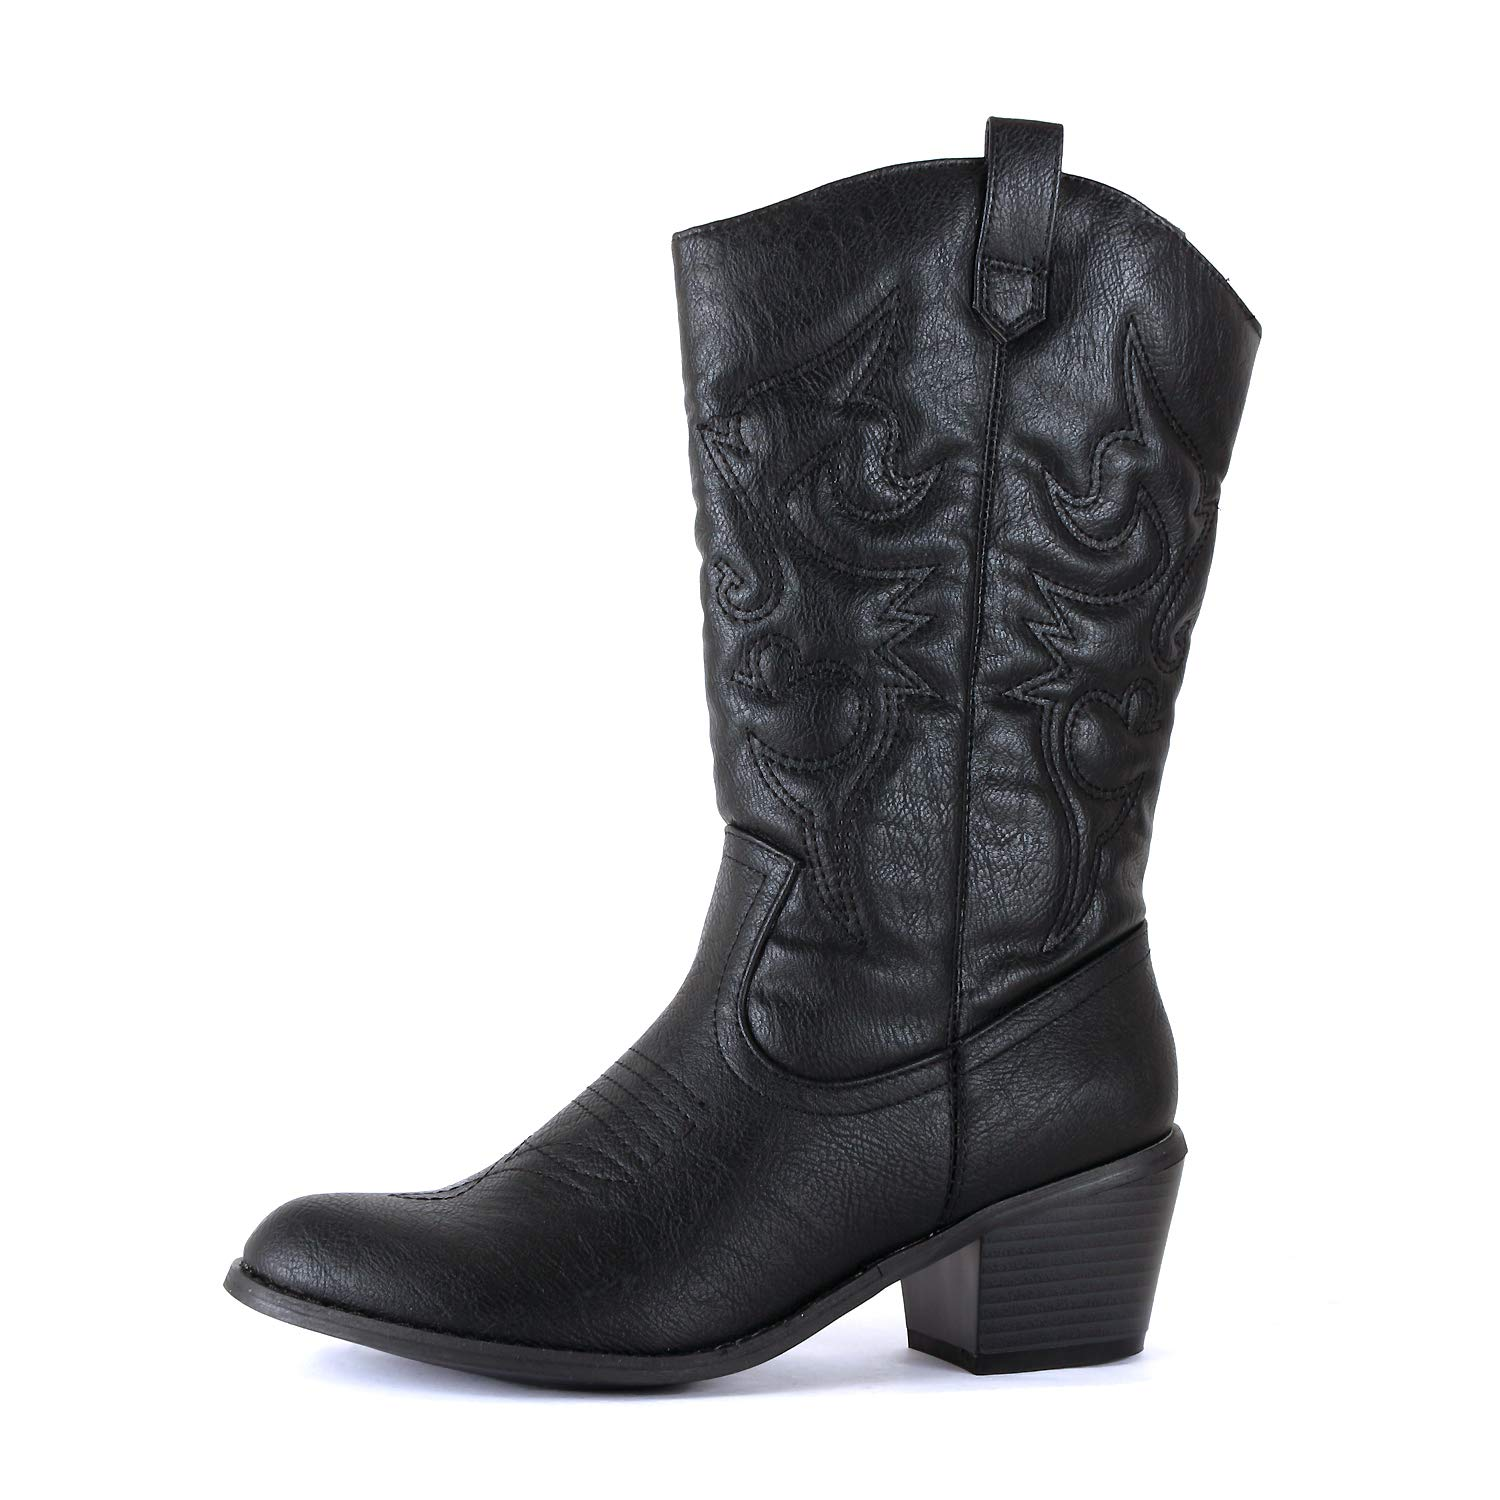 Black Pu West Blvd Miami Cowboy Western Boots